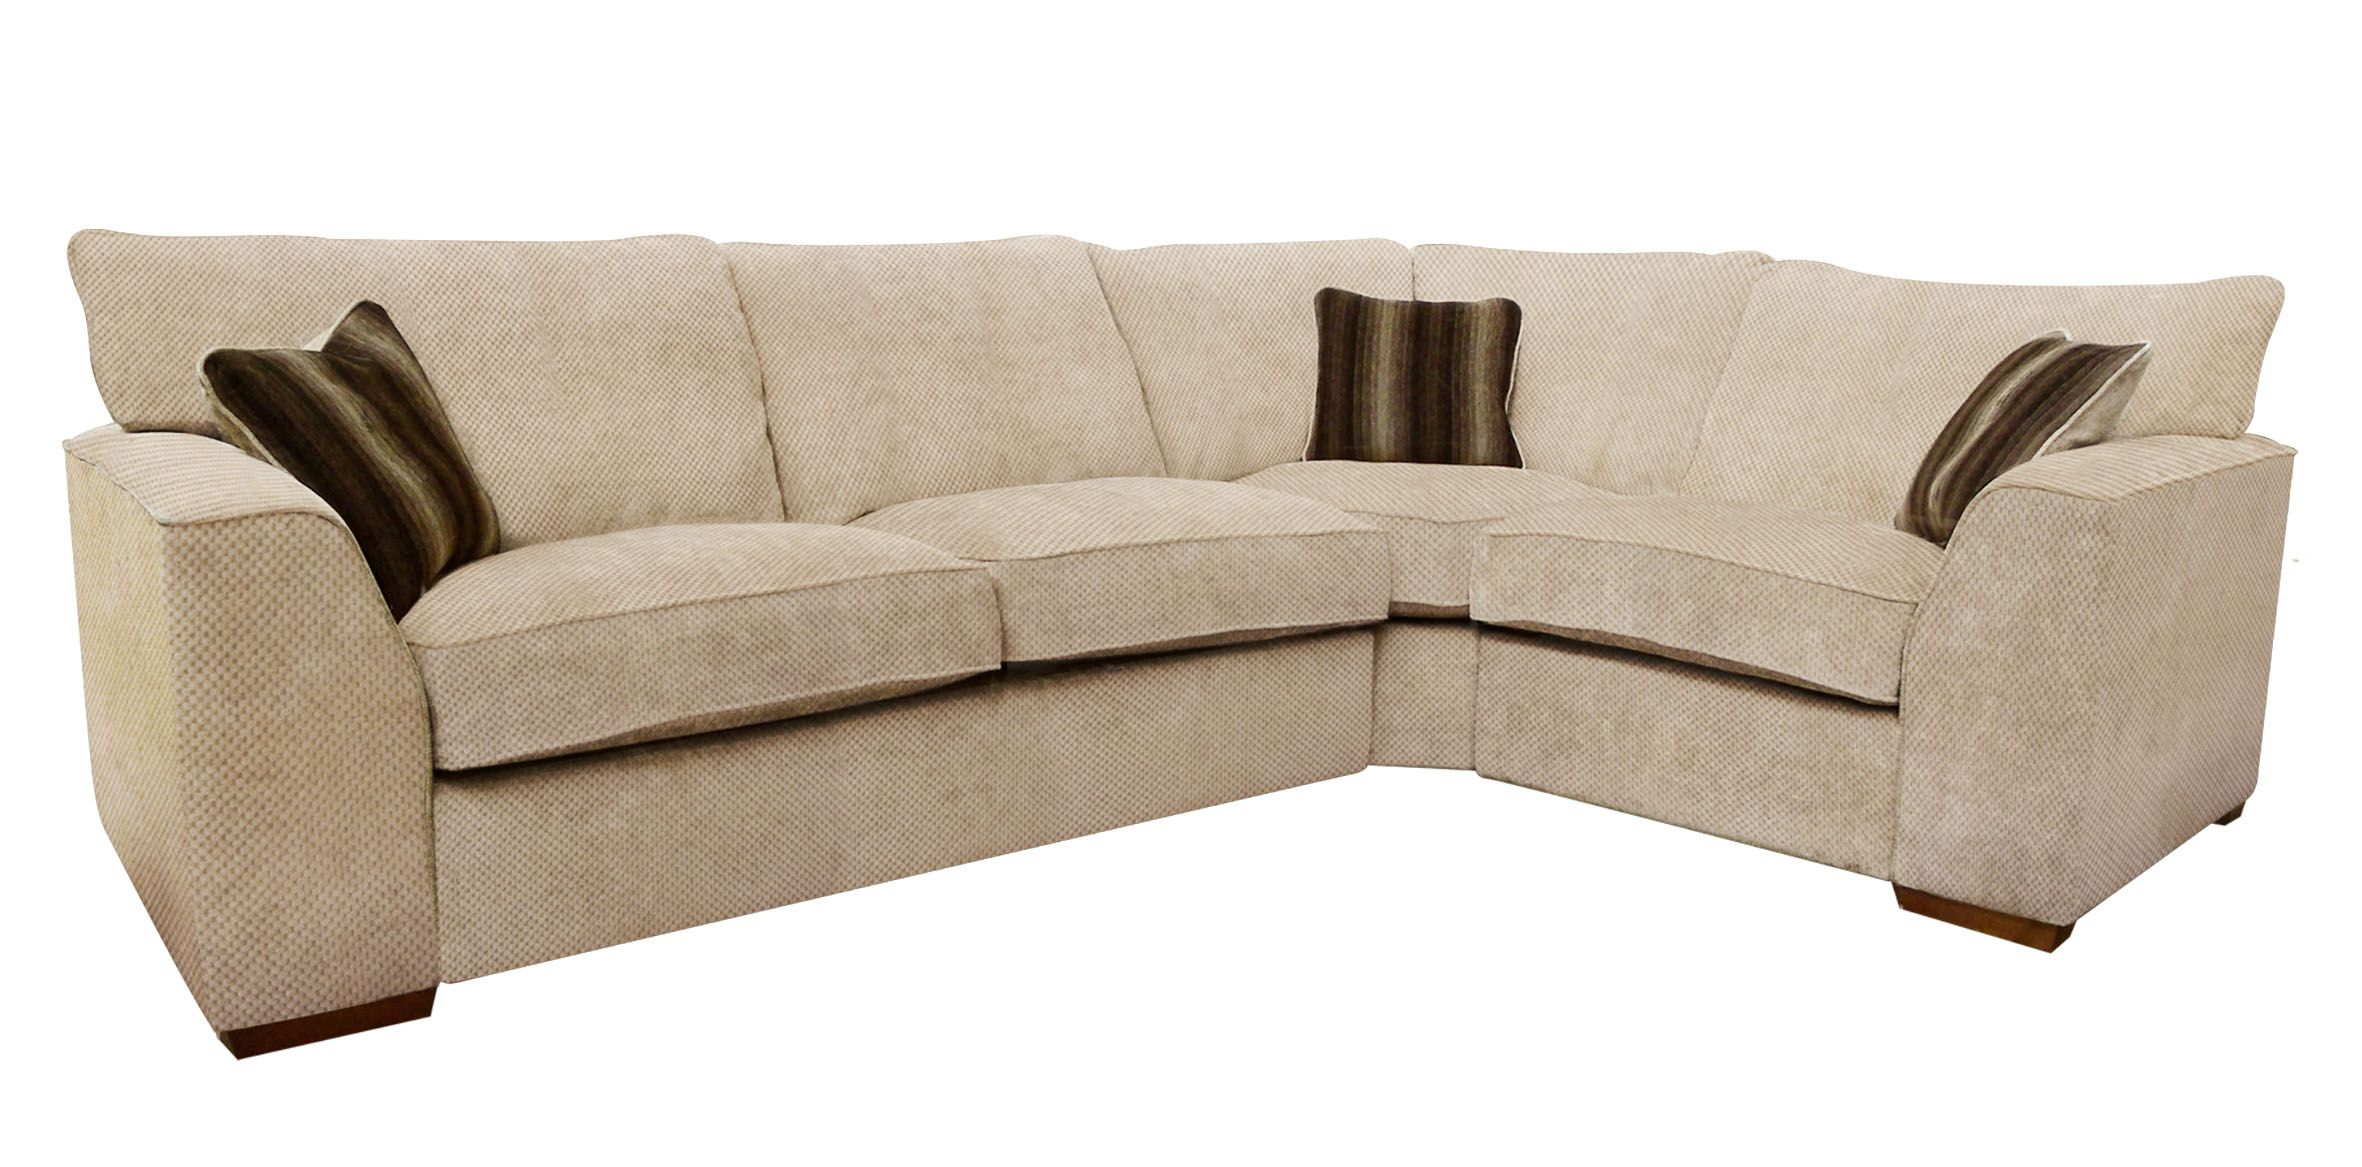 Montana right hand facing corner sofa